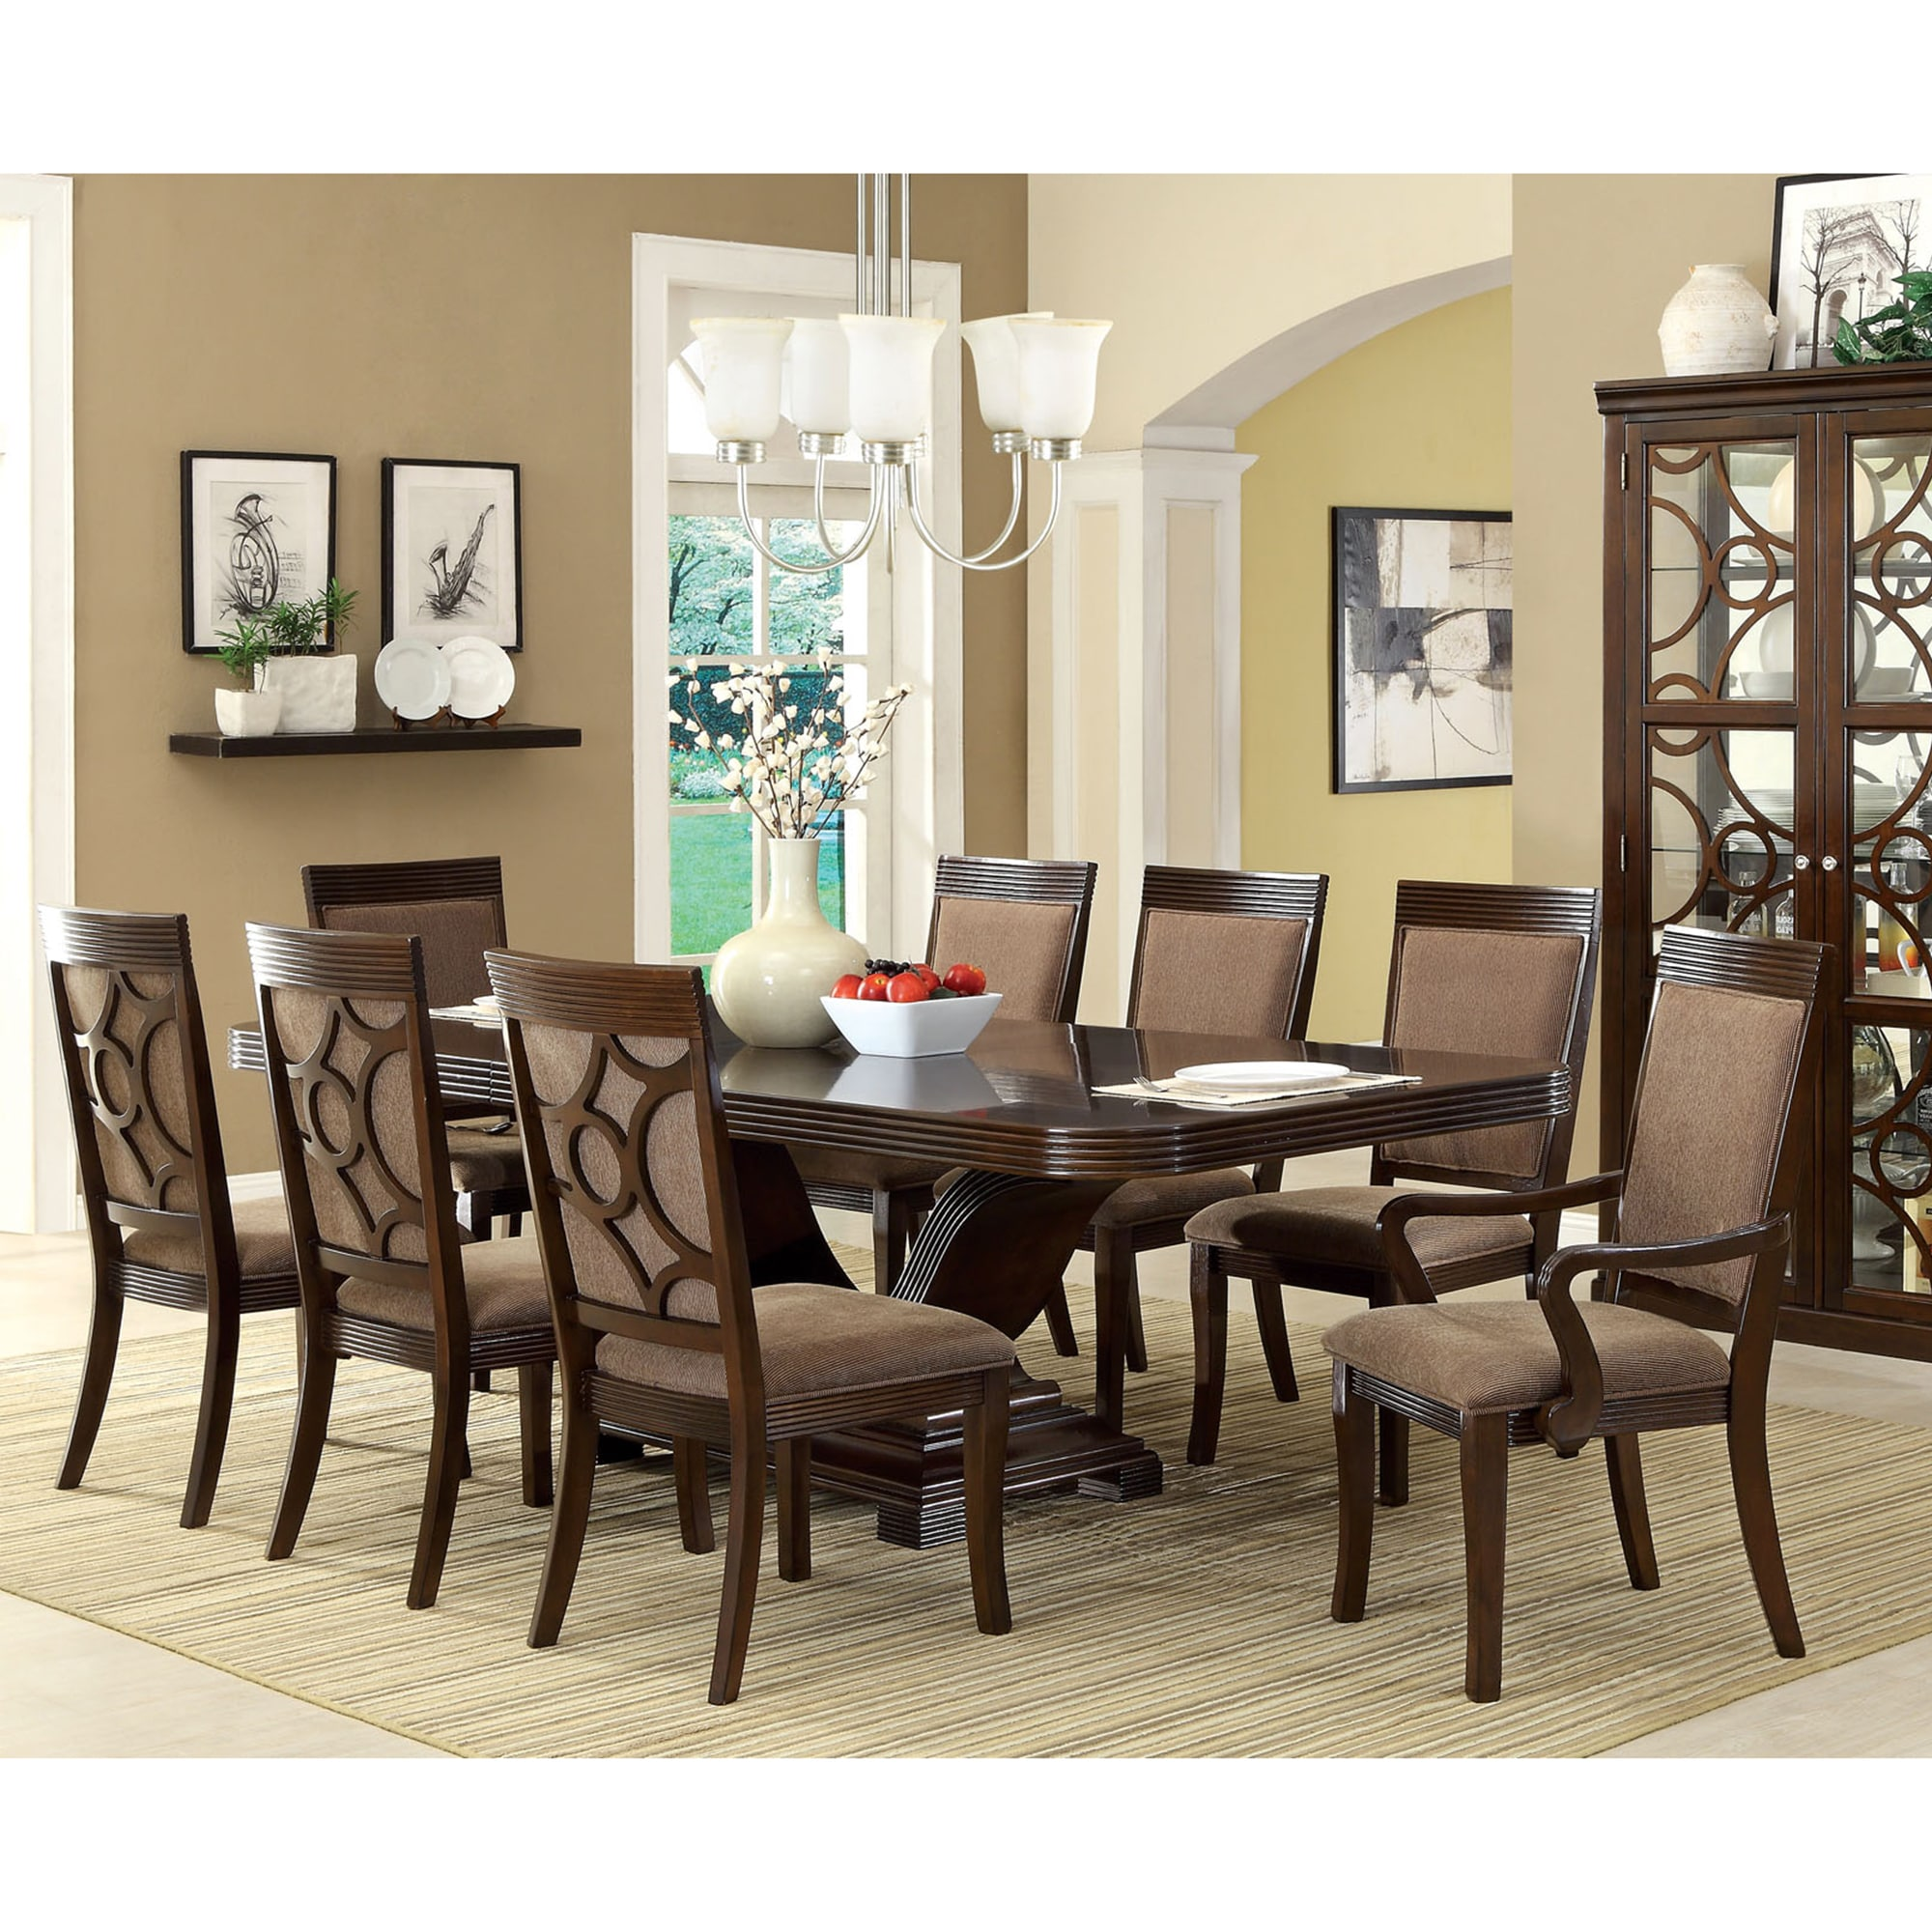 Furniture Of America Dubelle 7 Piece Formal Dining Set: Furniture Of America Woodburly 7-Piece Dining Set With